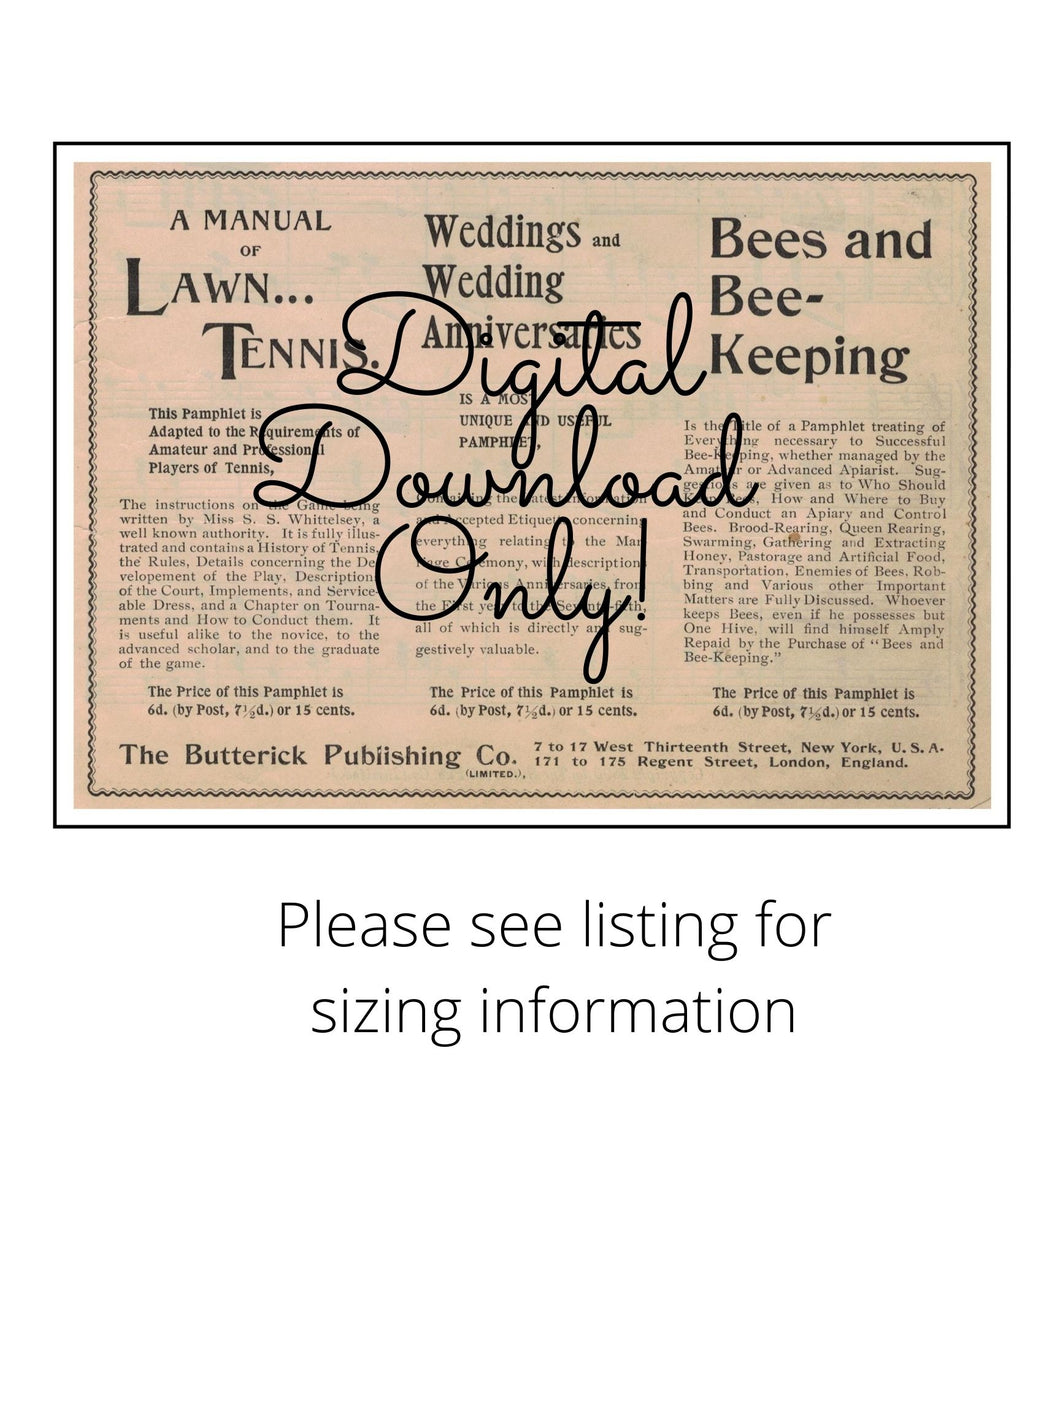 Antique Ad The Butterick Publishing Co. 1896 DIGITAL DOWNLOAD Image Instant Download Printable Art Poster Mail Order Advertisement